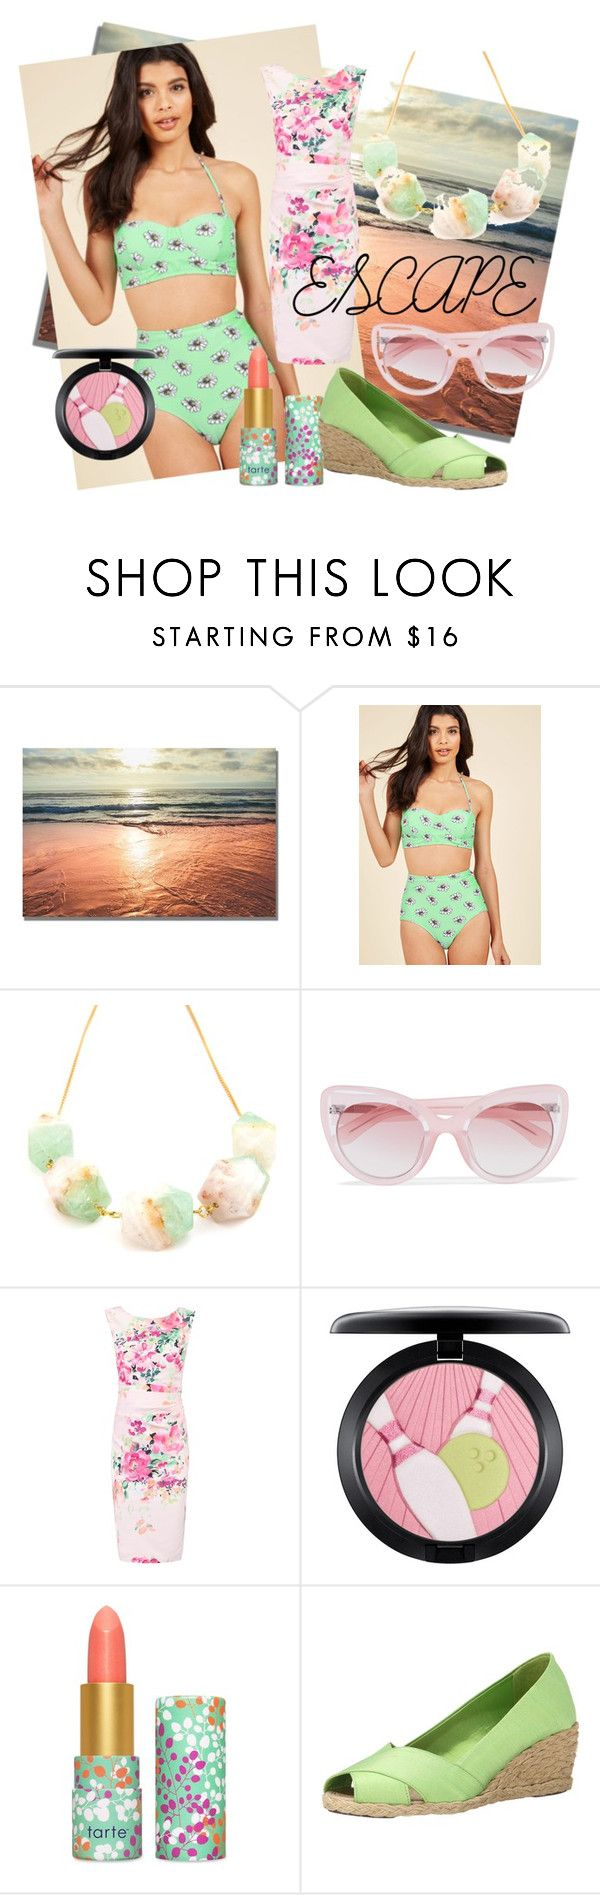 """""""Take me somewhere warm!"""" by glam-hobo ❤ liked on Polyvore featuring High Dive by ModCloth, Salome, Erdem, Jolie Moi, MAC Cosmetics, tarte and Lauren Ralph Lauren"""